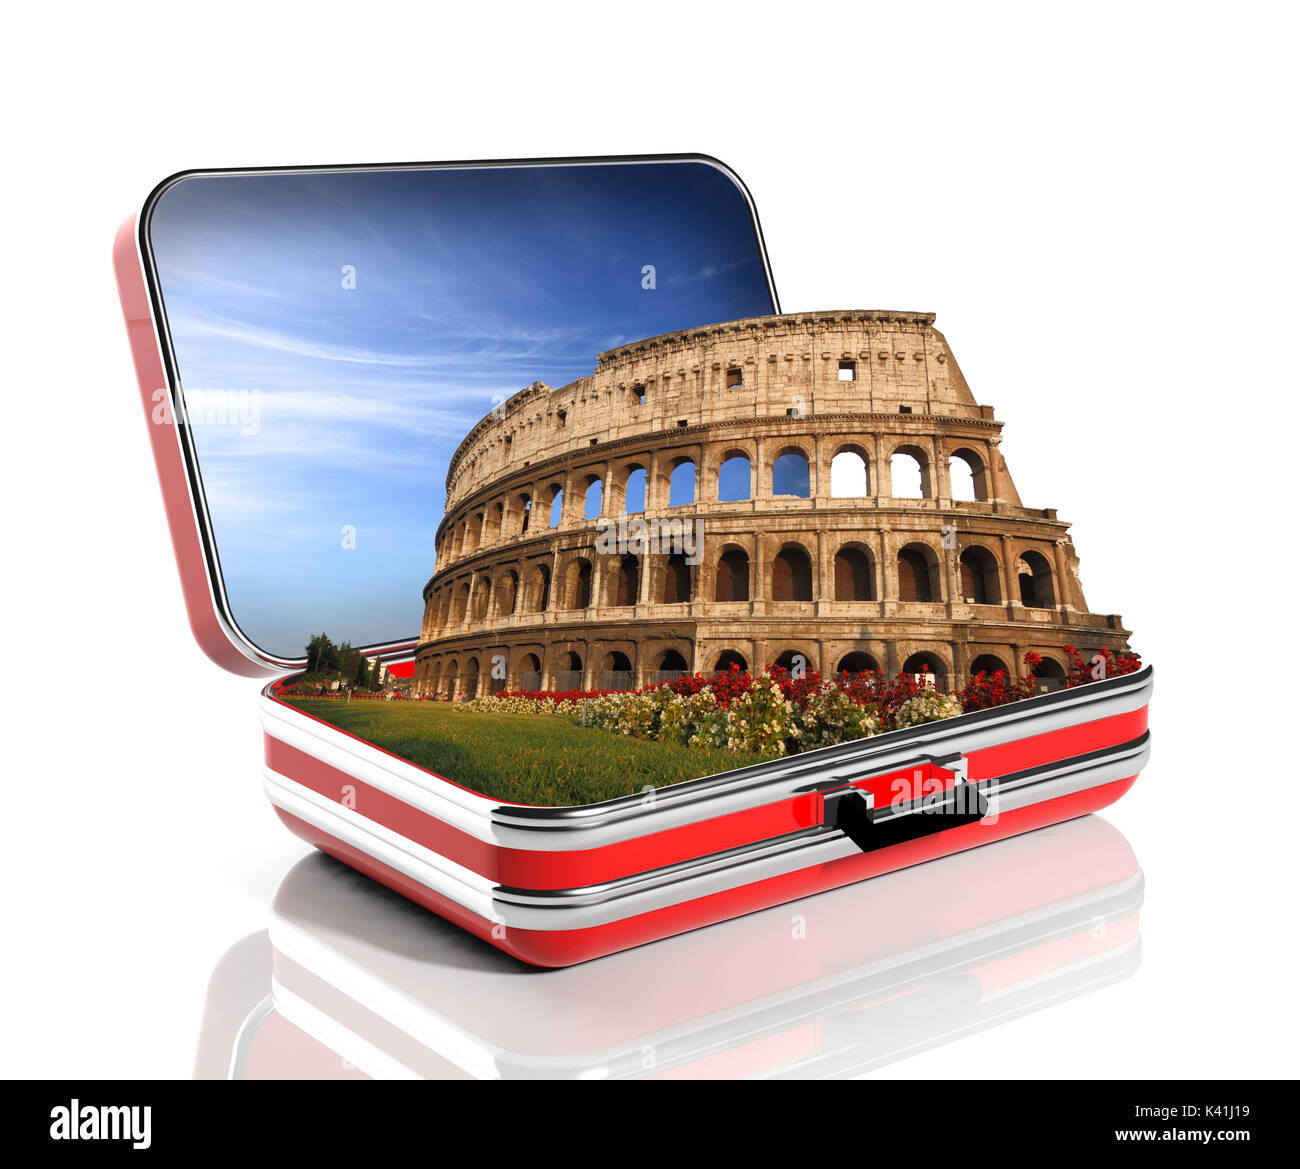 The Colosseum of Rome in a travel suitcase - Stock Image